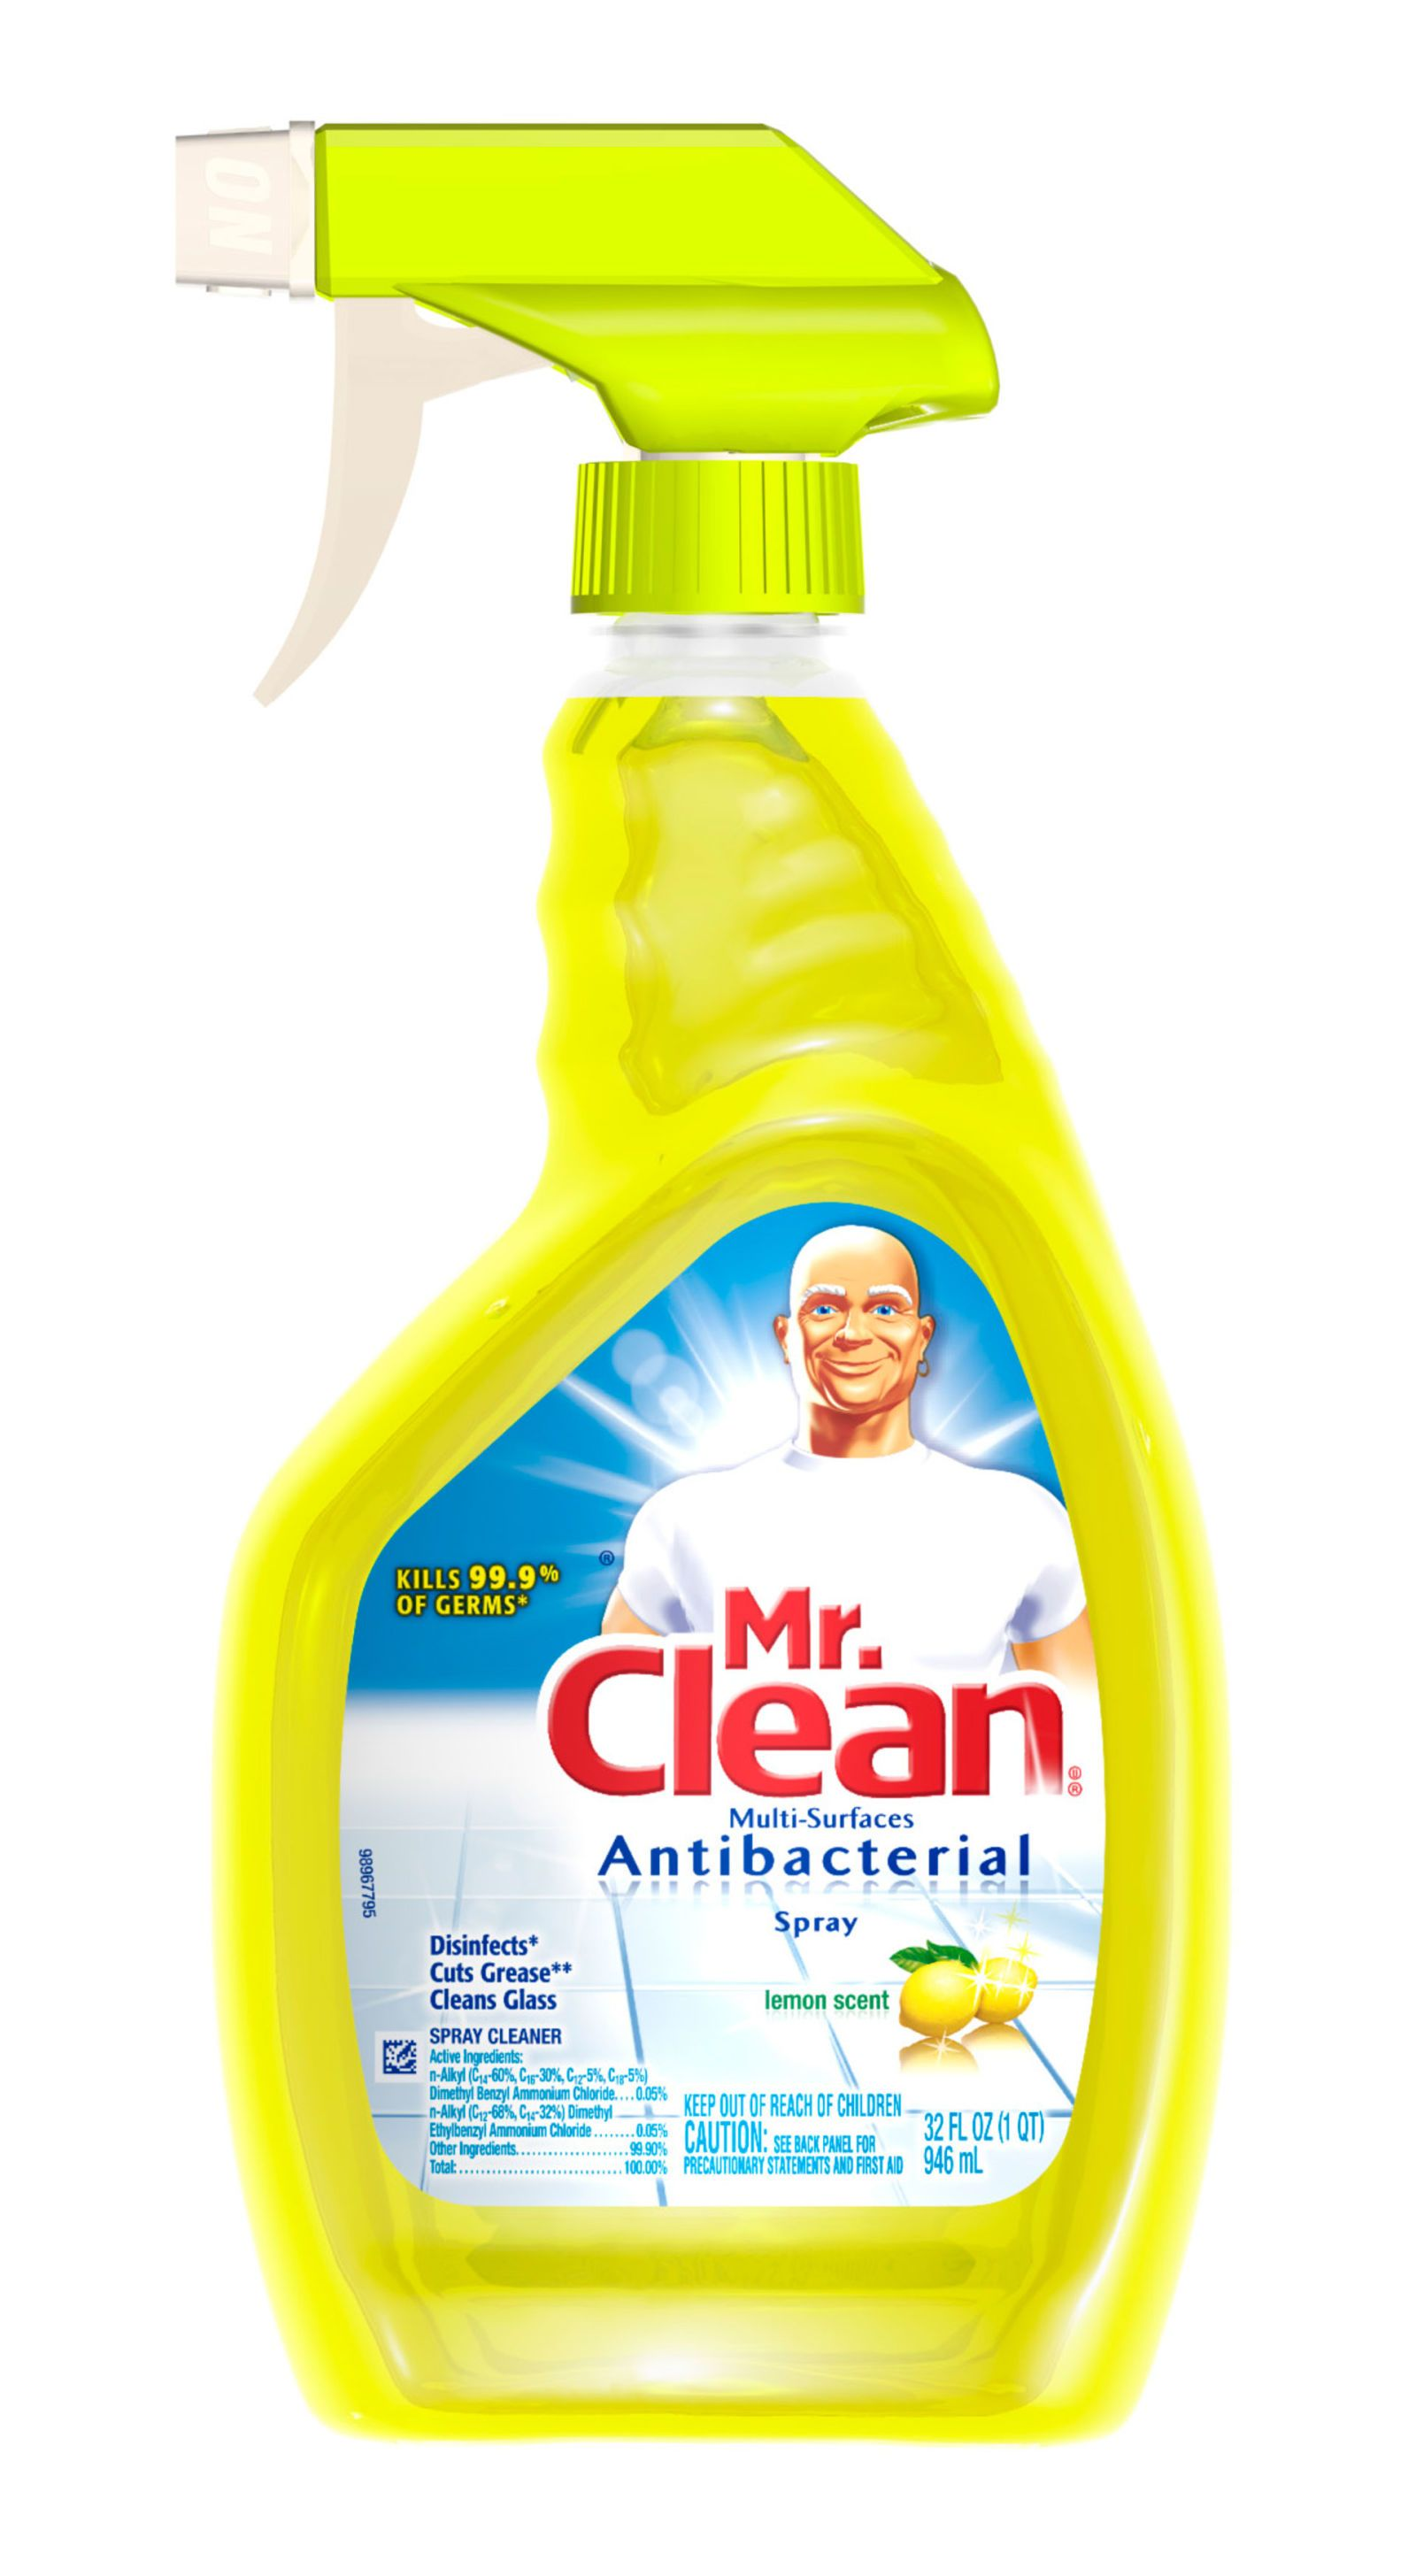 mr clean multi surfaces antibacterial spray lemon scent